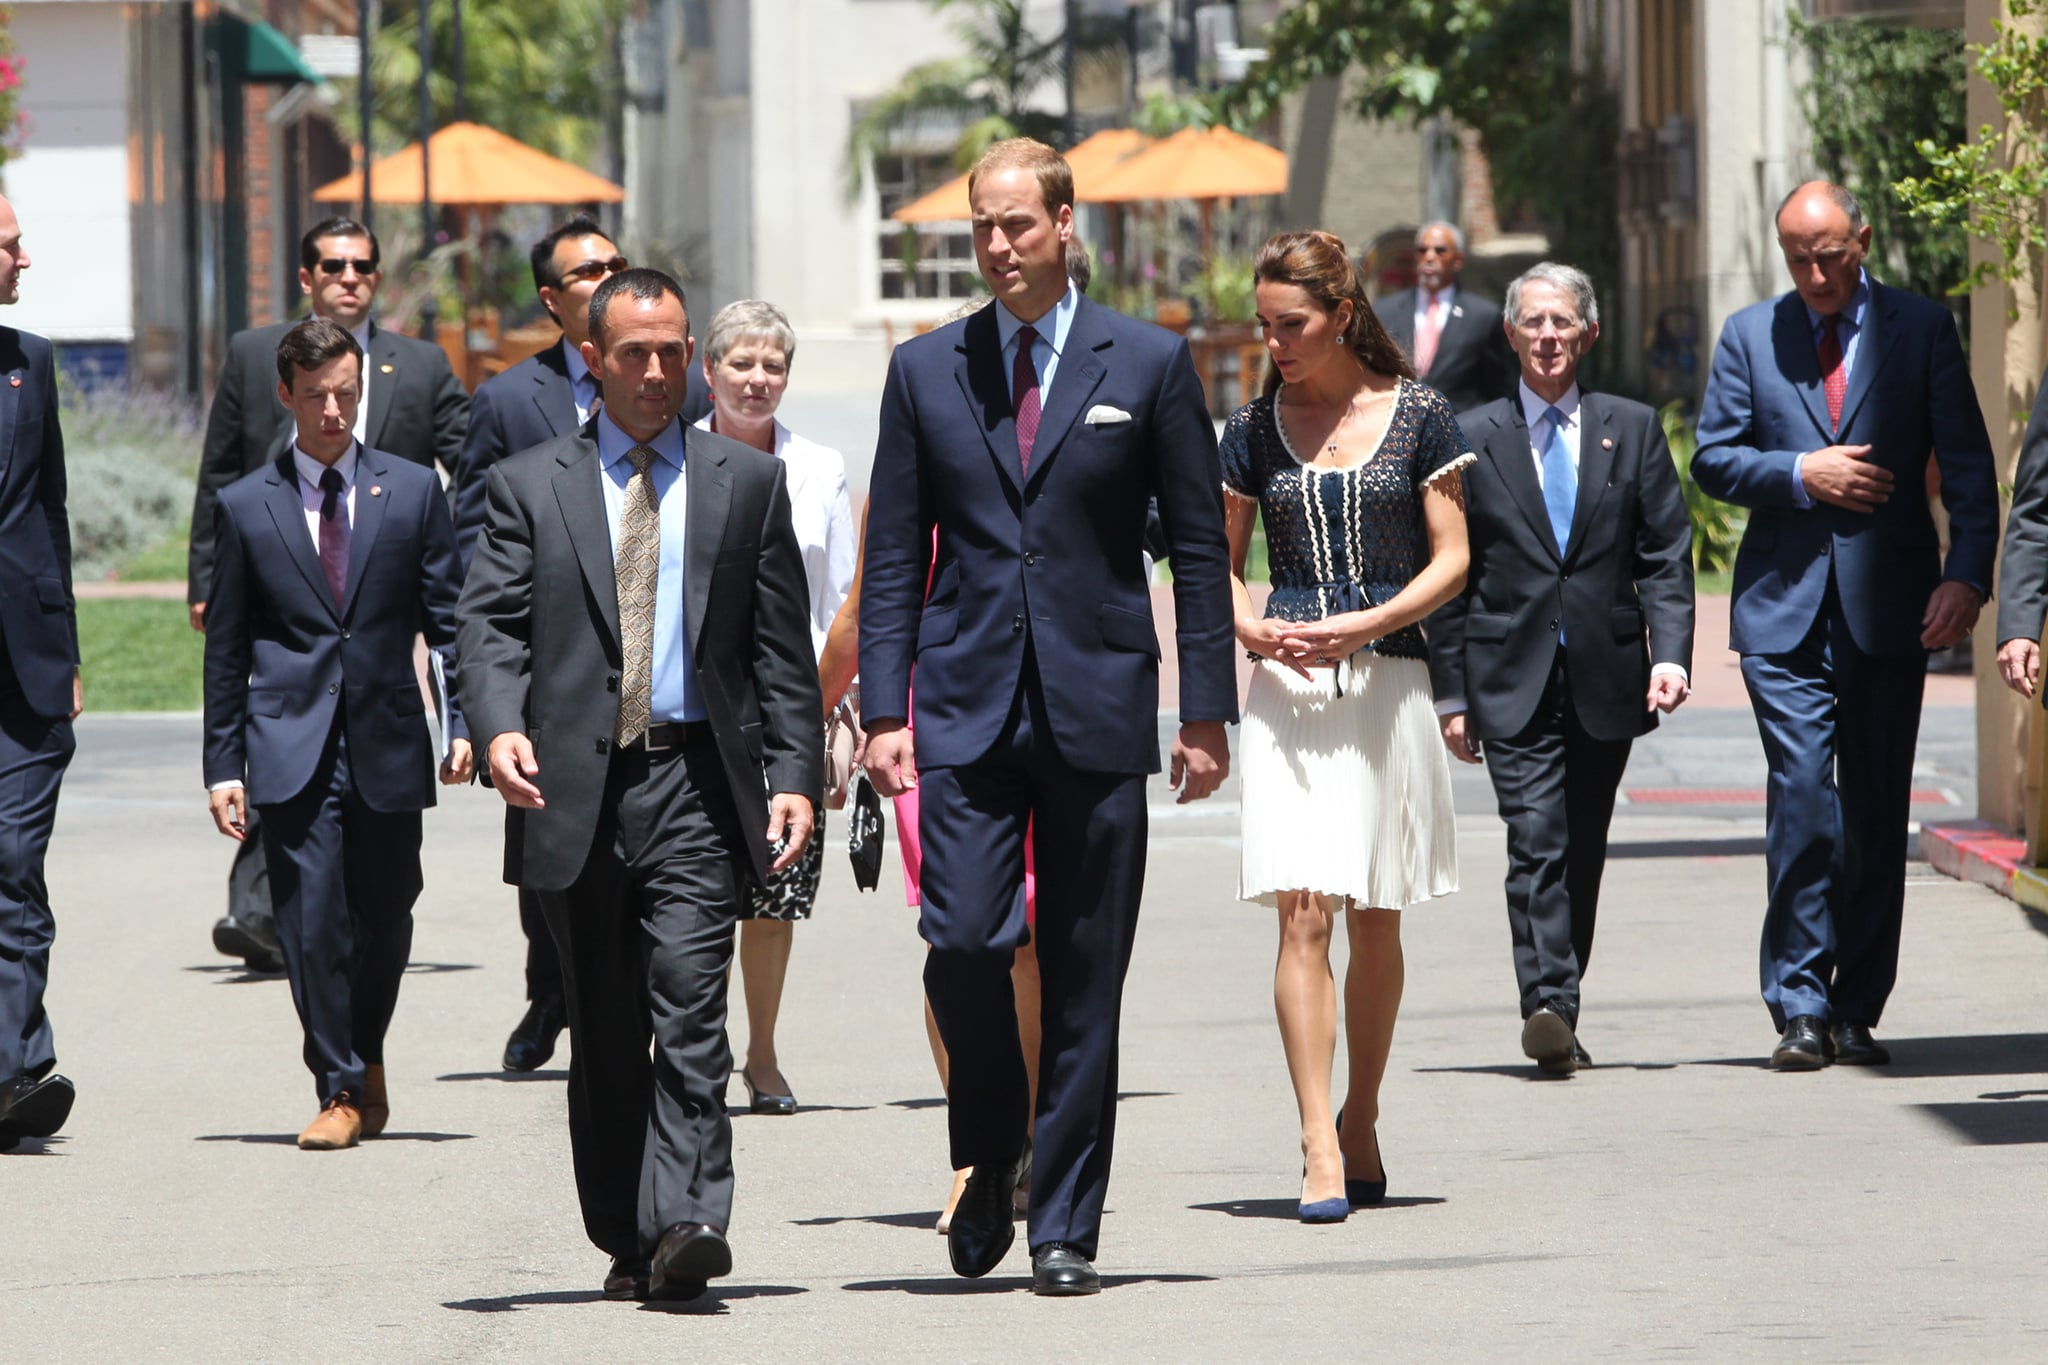 Kate Middleton and Prince William arriving at ServiceNation event in LA.